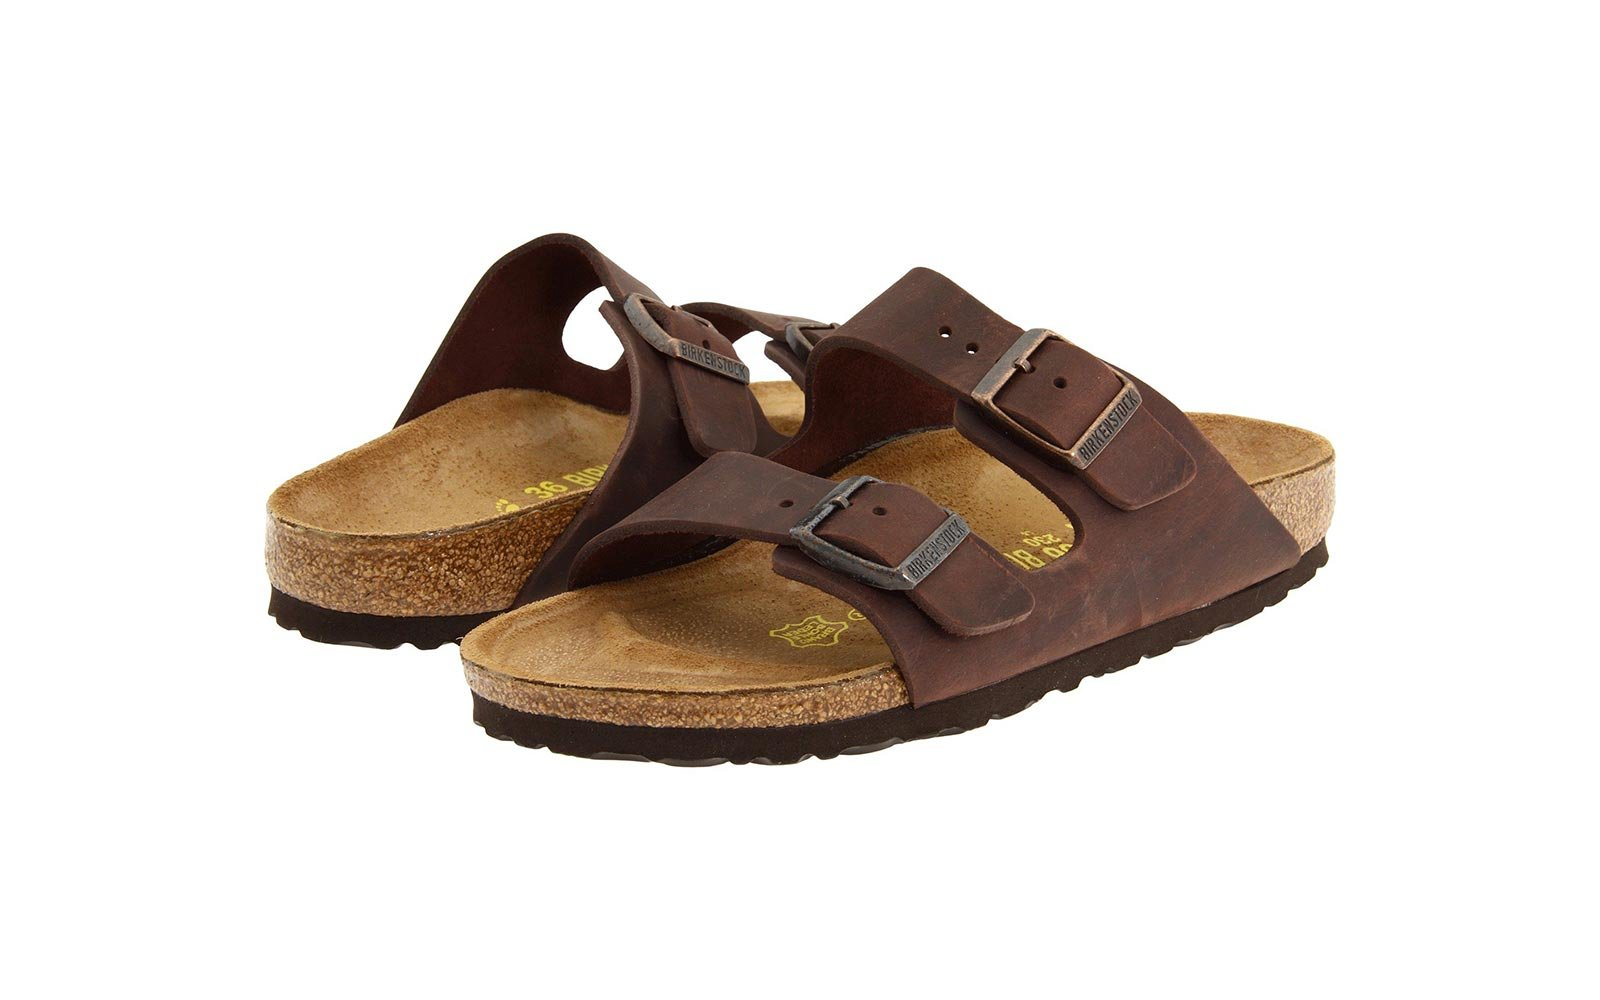 Leather Wear Sandals To SummerTravelLeisure Best The Men's This zLSVpGqUM